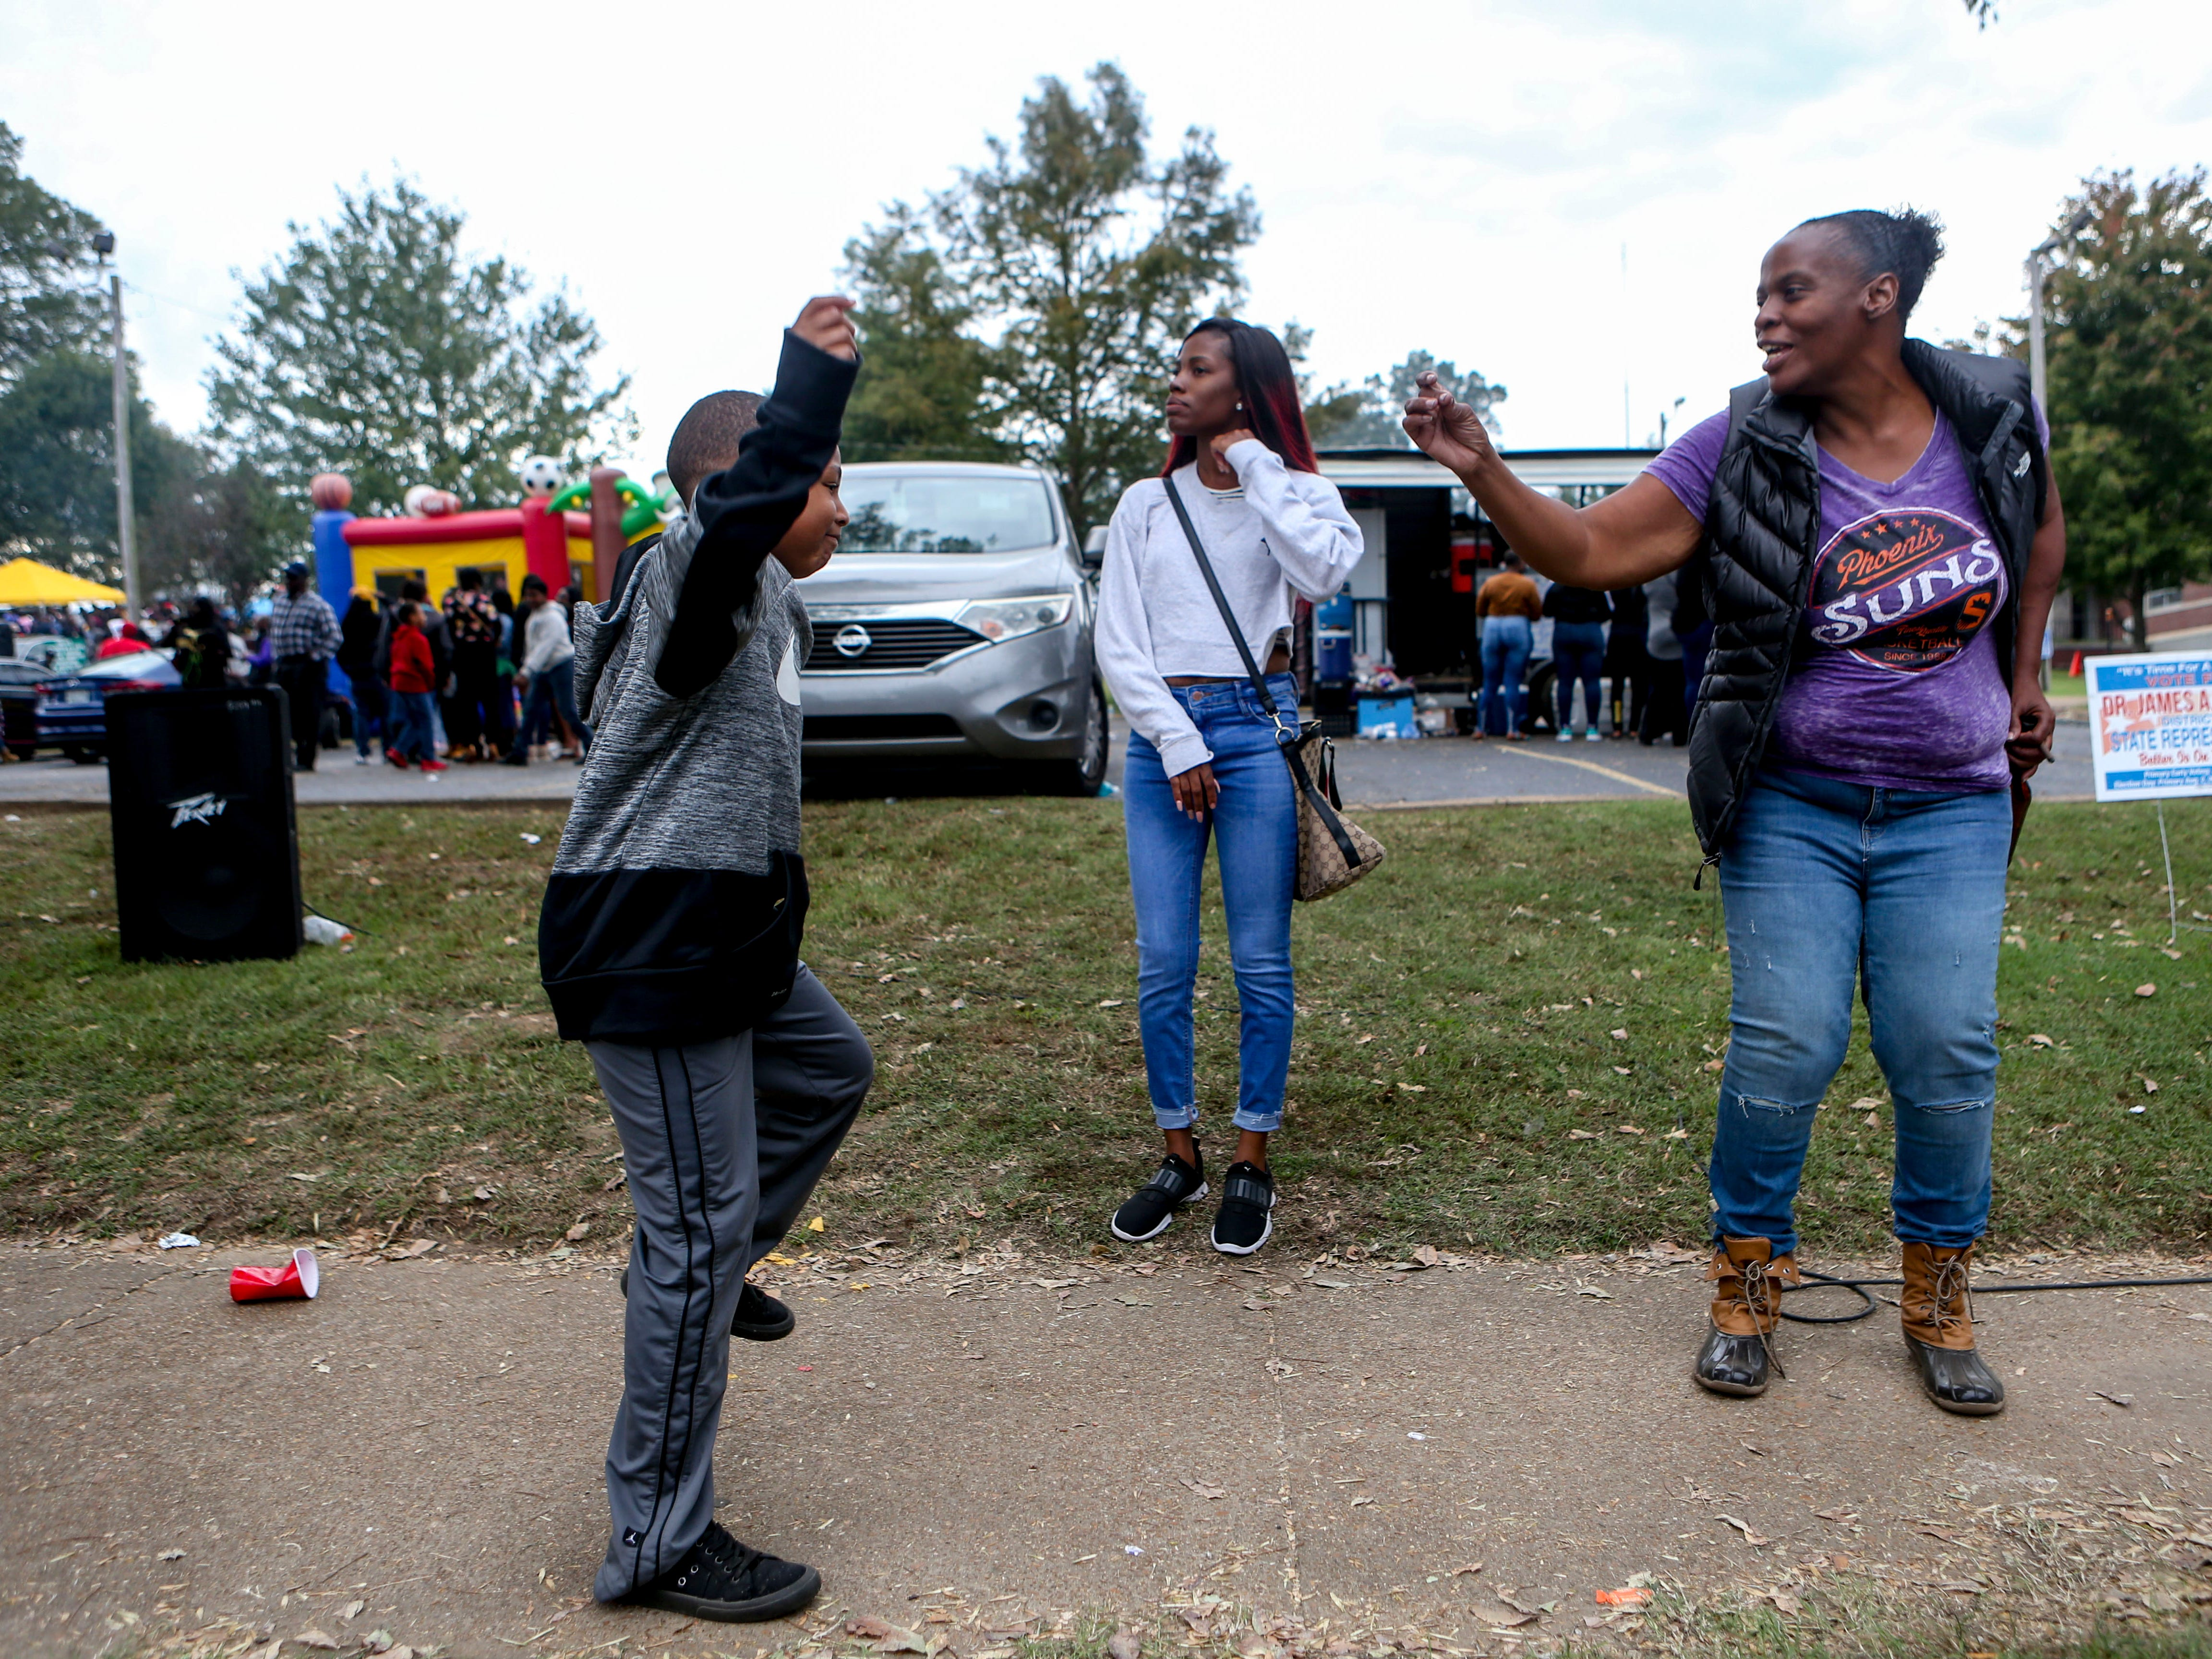 Terrion Yarbrough dances with his family on the sidewalk during Lane College's homecoming at T.R. White Sportsplex in Jackson, Tenn., on Saturday, Oct. 13, 2018.